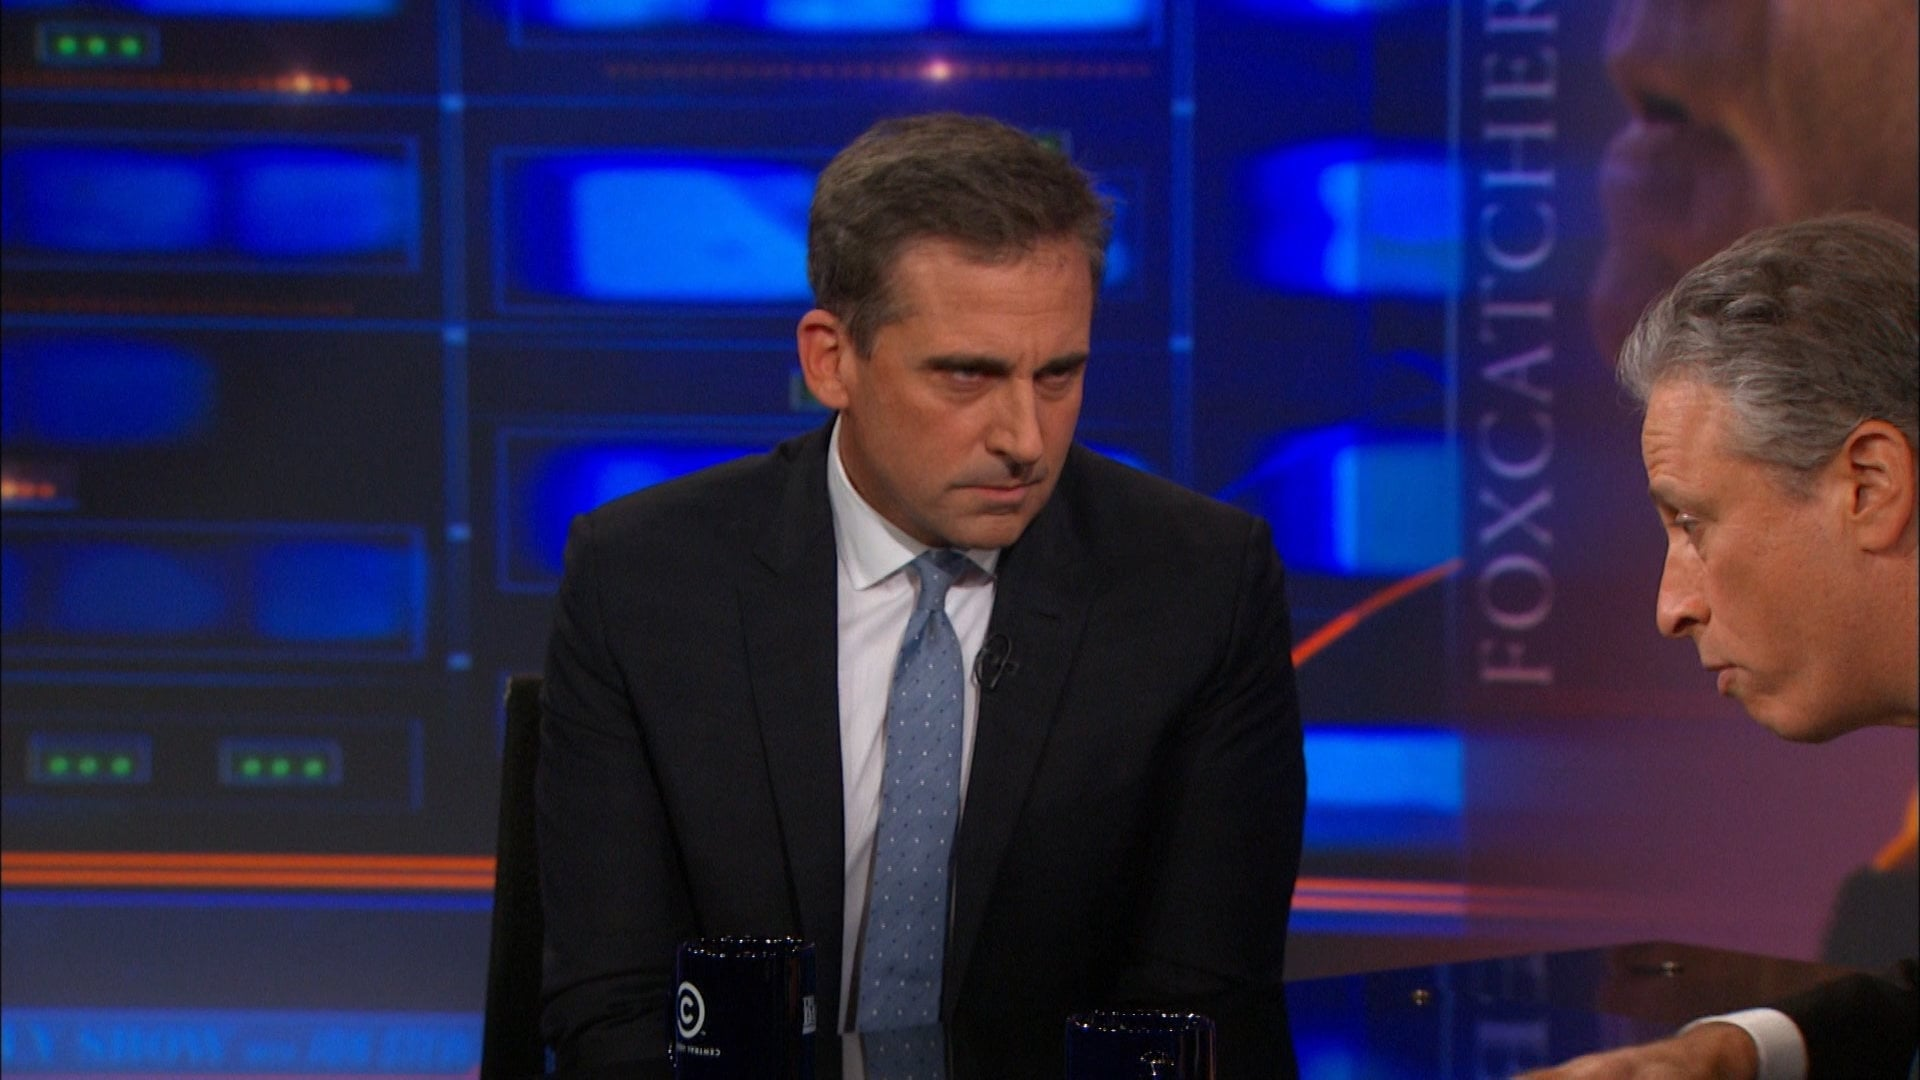 The Daily Show with Trevor Noah Season 20 :Episode 23  Steve Carell